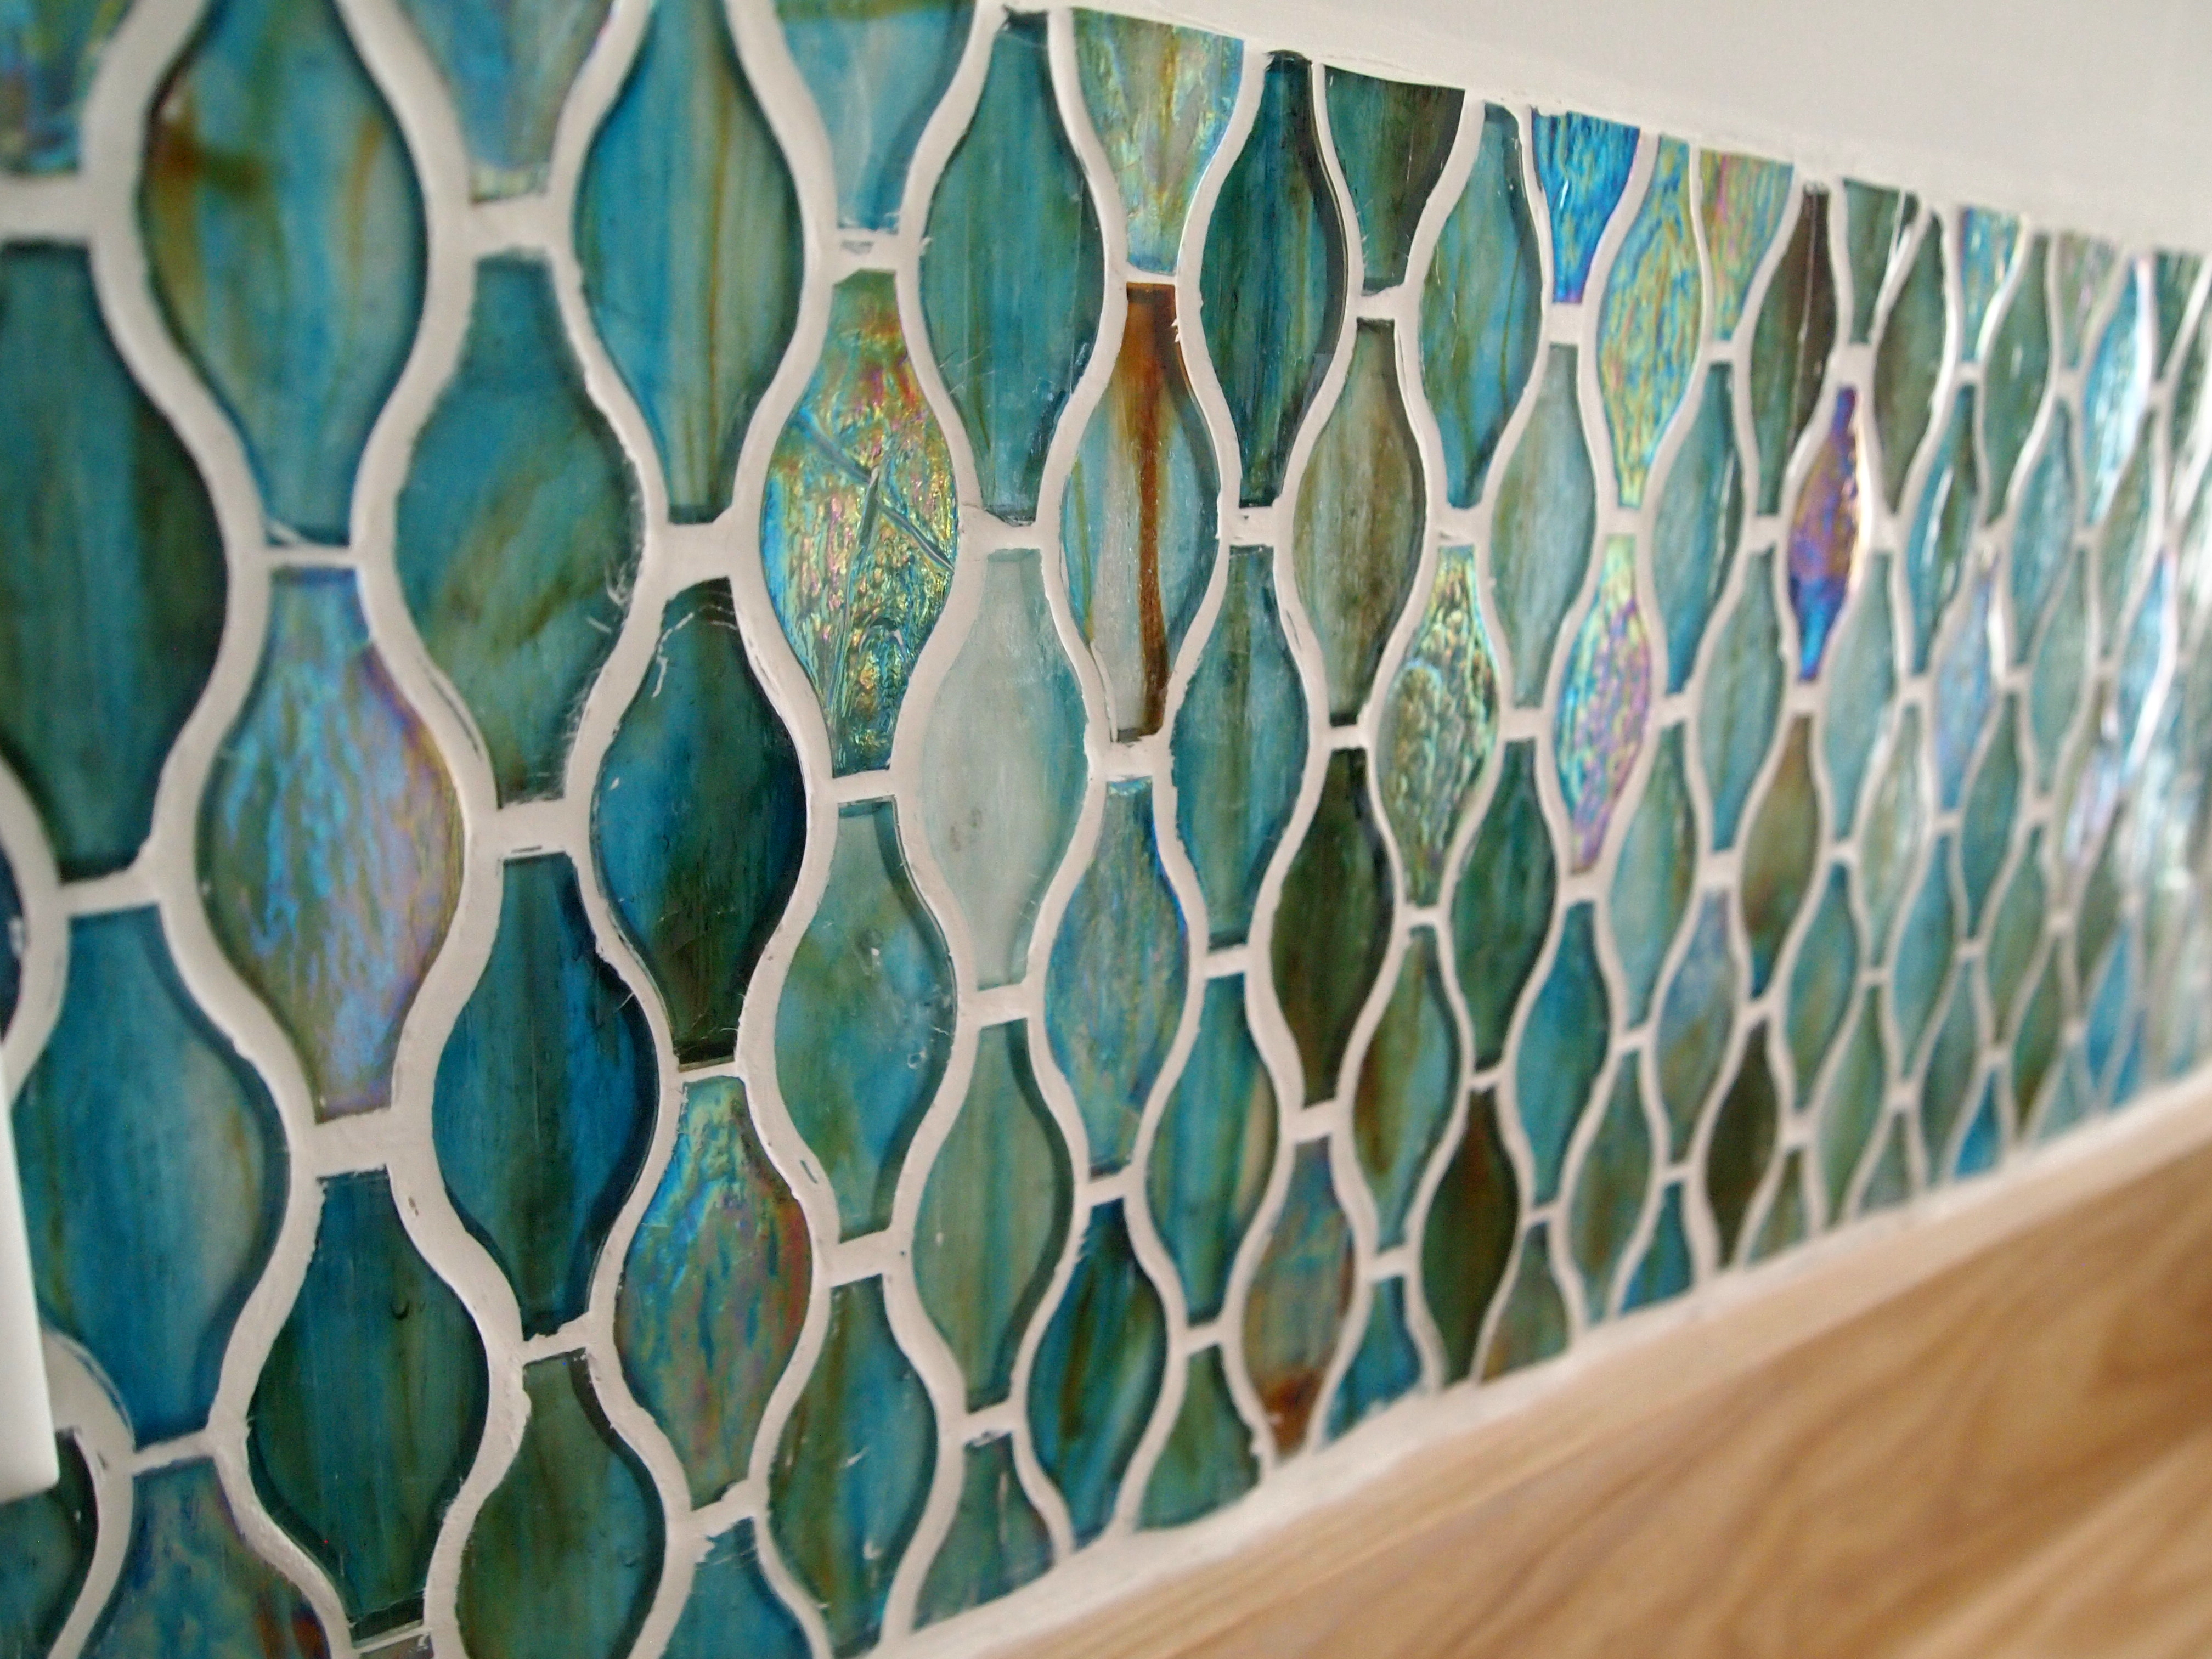 How to install a glass tile backsplash... amazing laundry room transformation Sawdust and Embryos